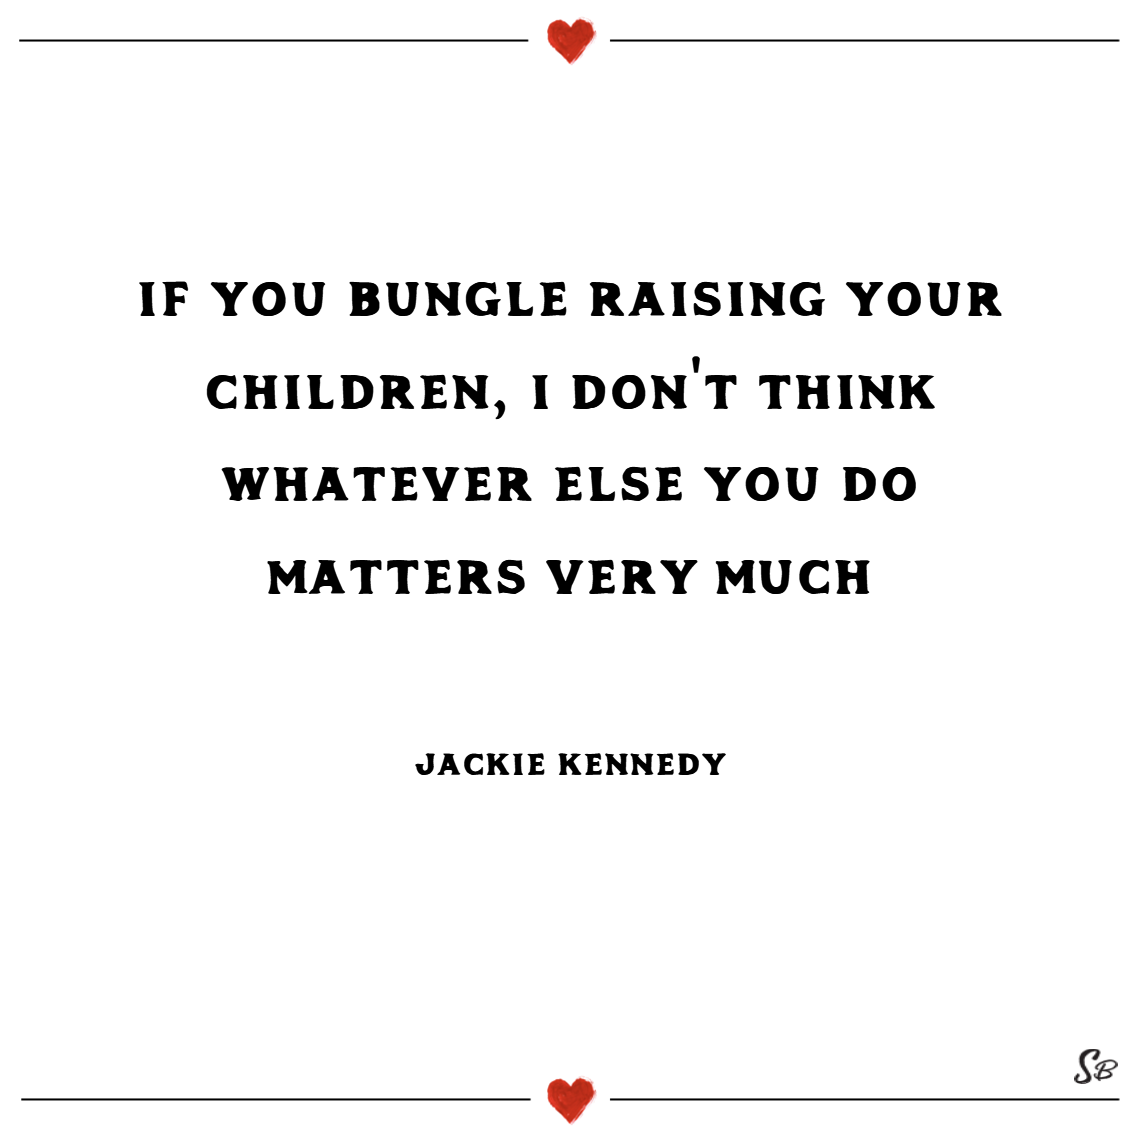 If you bungle raising your children, i don't think whatever else you do matters very much. – jackie kennedy